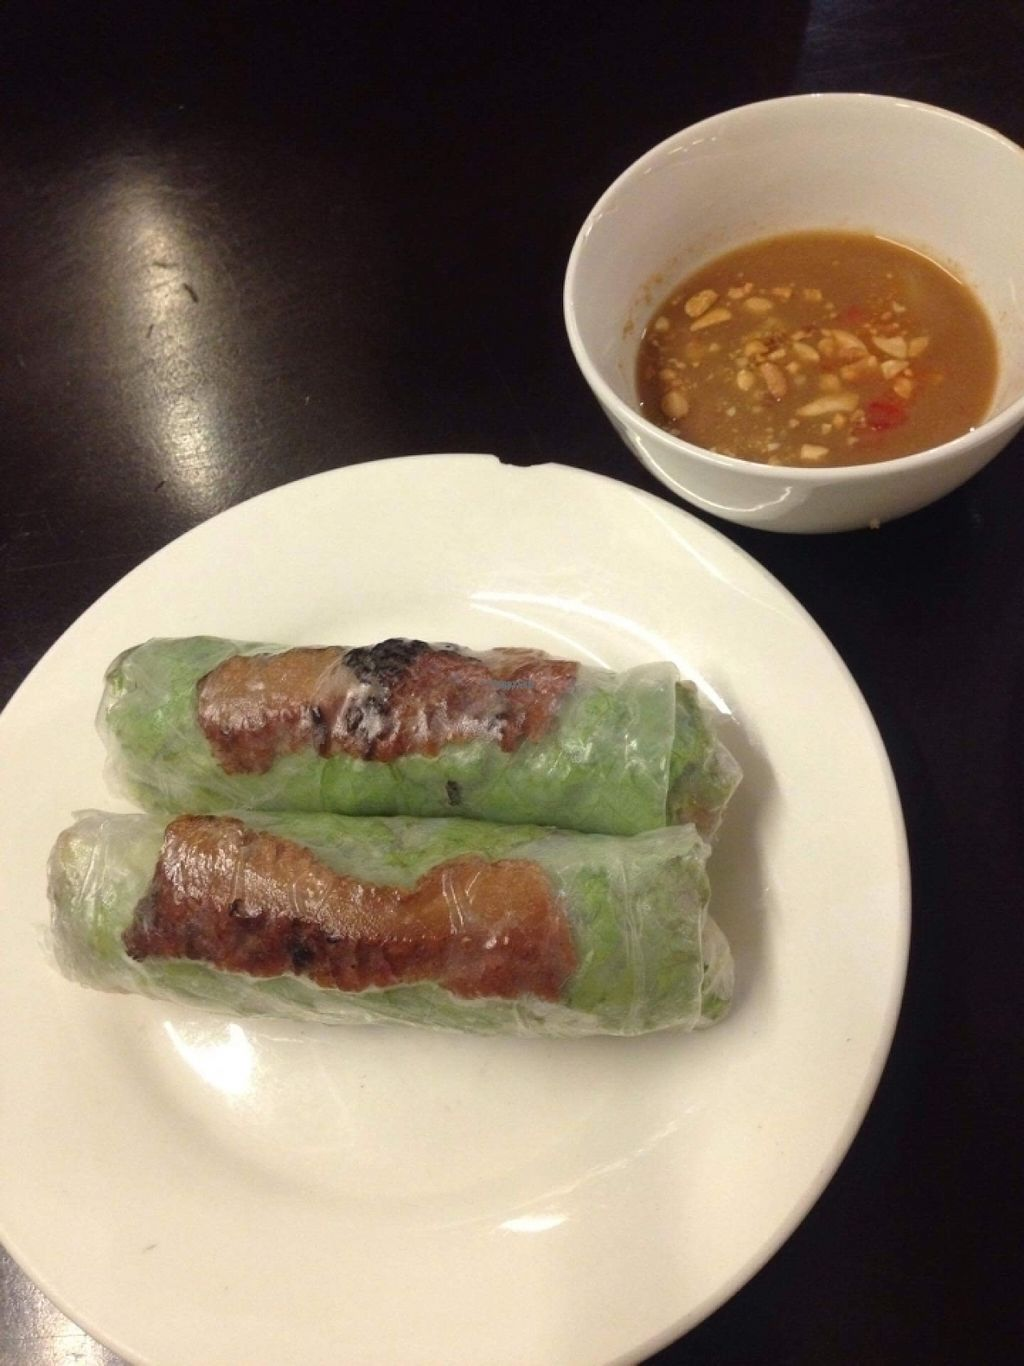 """Photo of Hoa Sen - Nha Hang Chay  by <a href=""""/members/profile/TeddyCourage"""">TeddyCourage</a> <br/>fresh spring rolls <br/> November 2, 2016  - <a href='/contact/abuse/image/18728/186014'>Report</a>"""